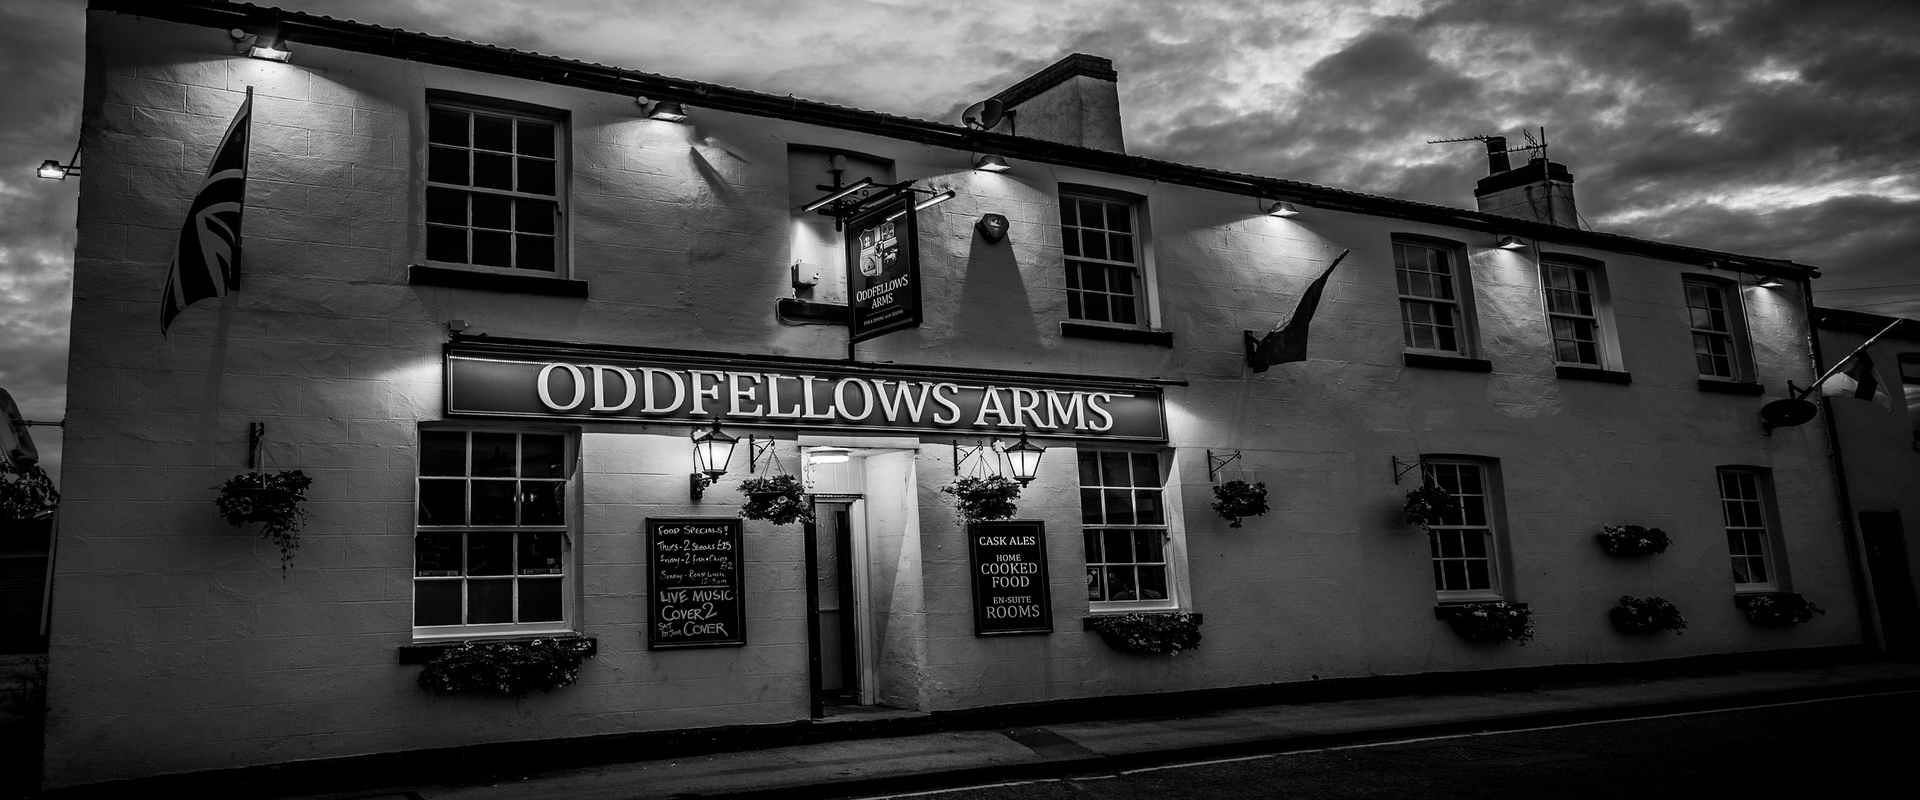 Picture of the Oddfellows Arms in Sherburn in Elmet